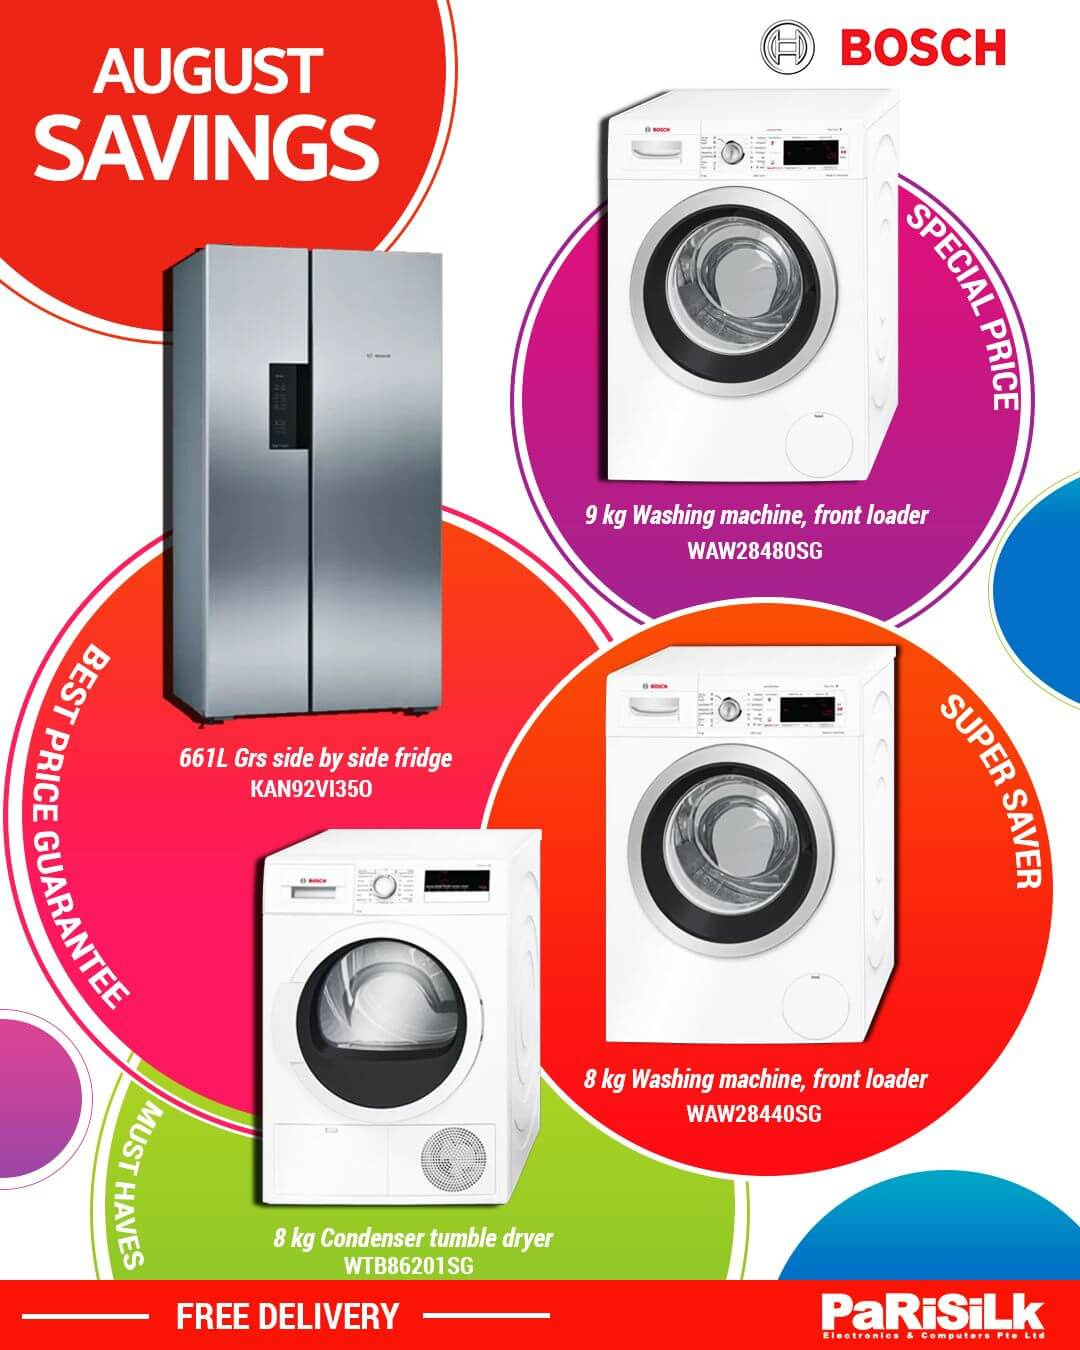 25 Aug 2020 Onwards: Bosch August Savings Promotion at Parisilk